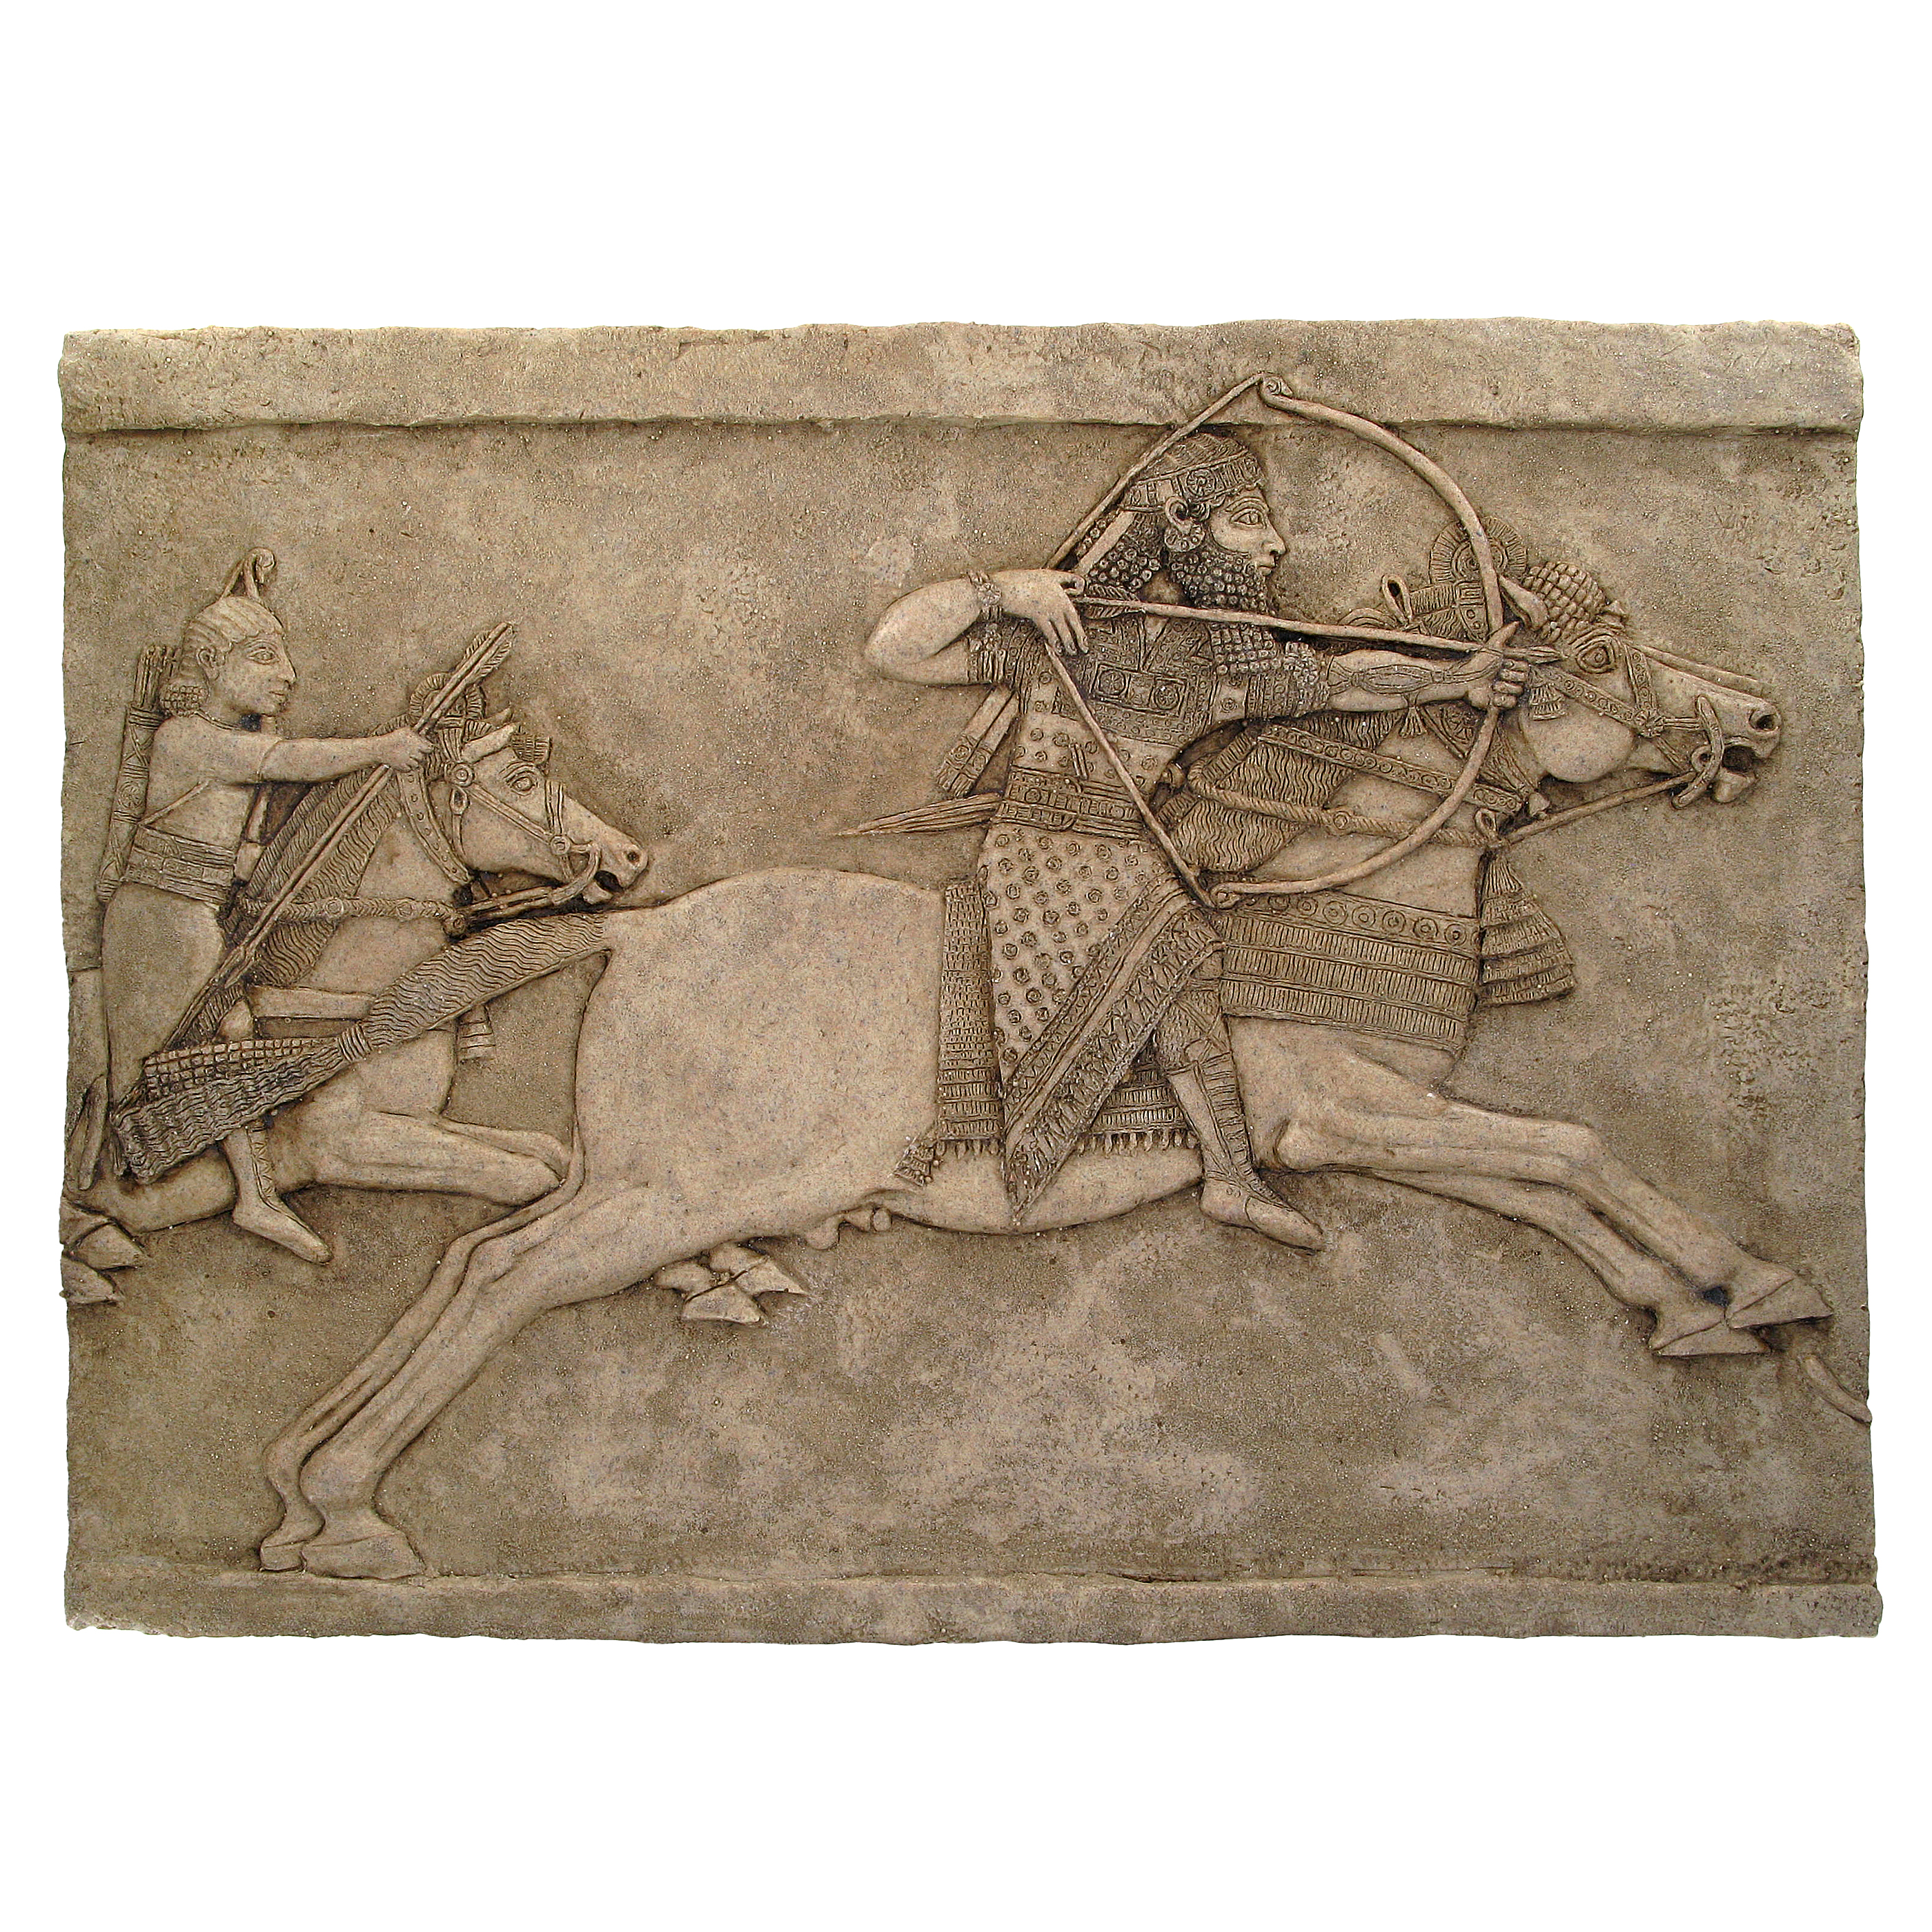 Ashurbanipal and horse plaque